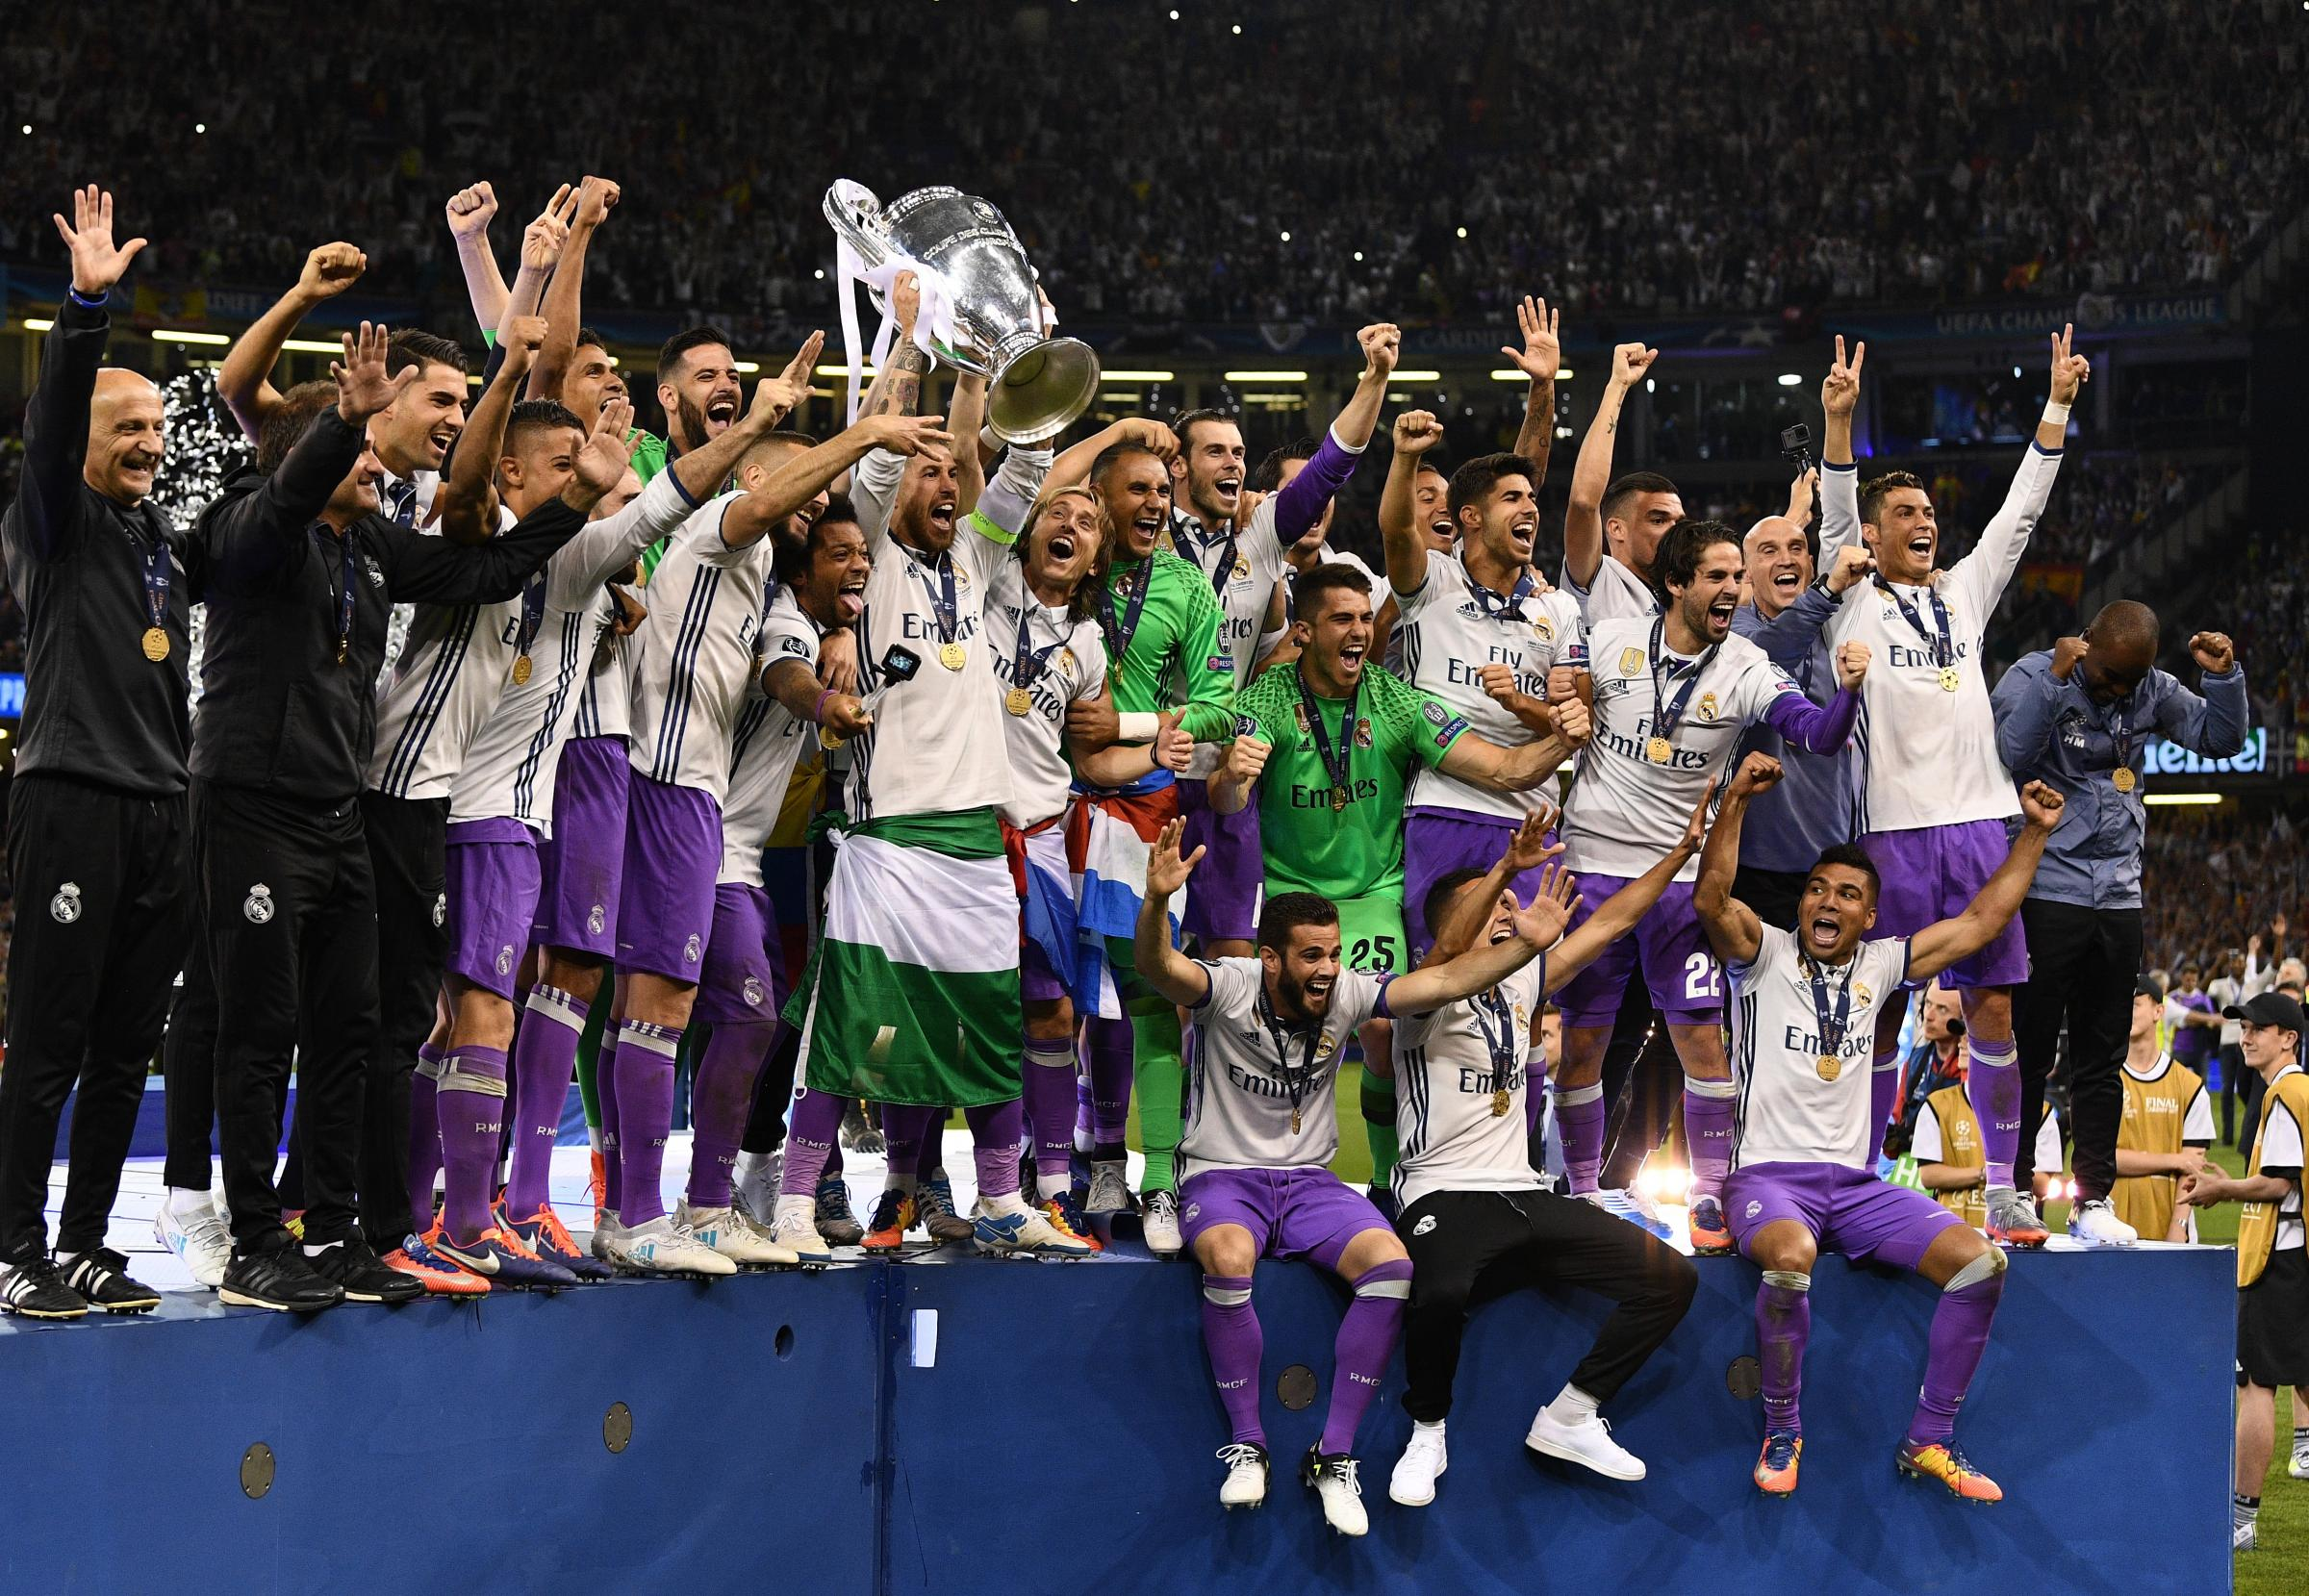 Real Madrid lift the Champions League trophy. Photo by David Ramos/Getty Images.